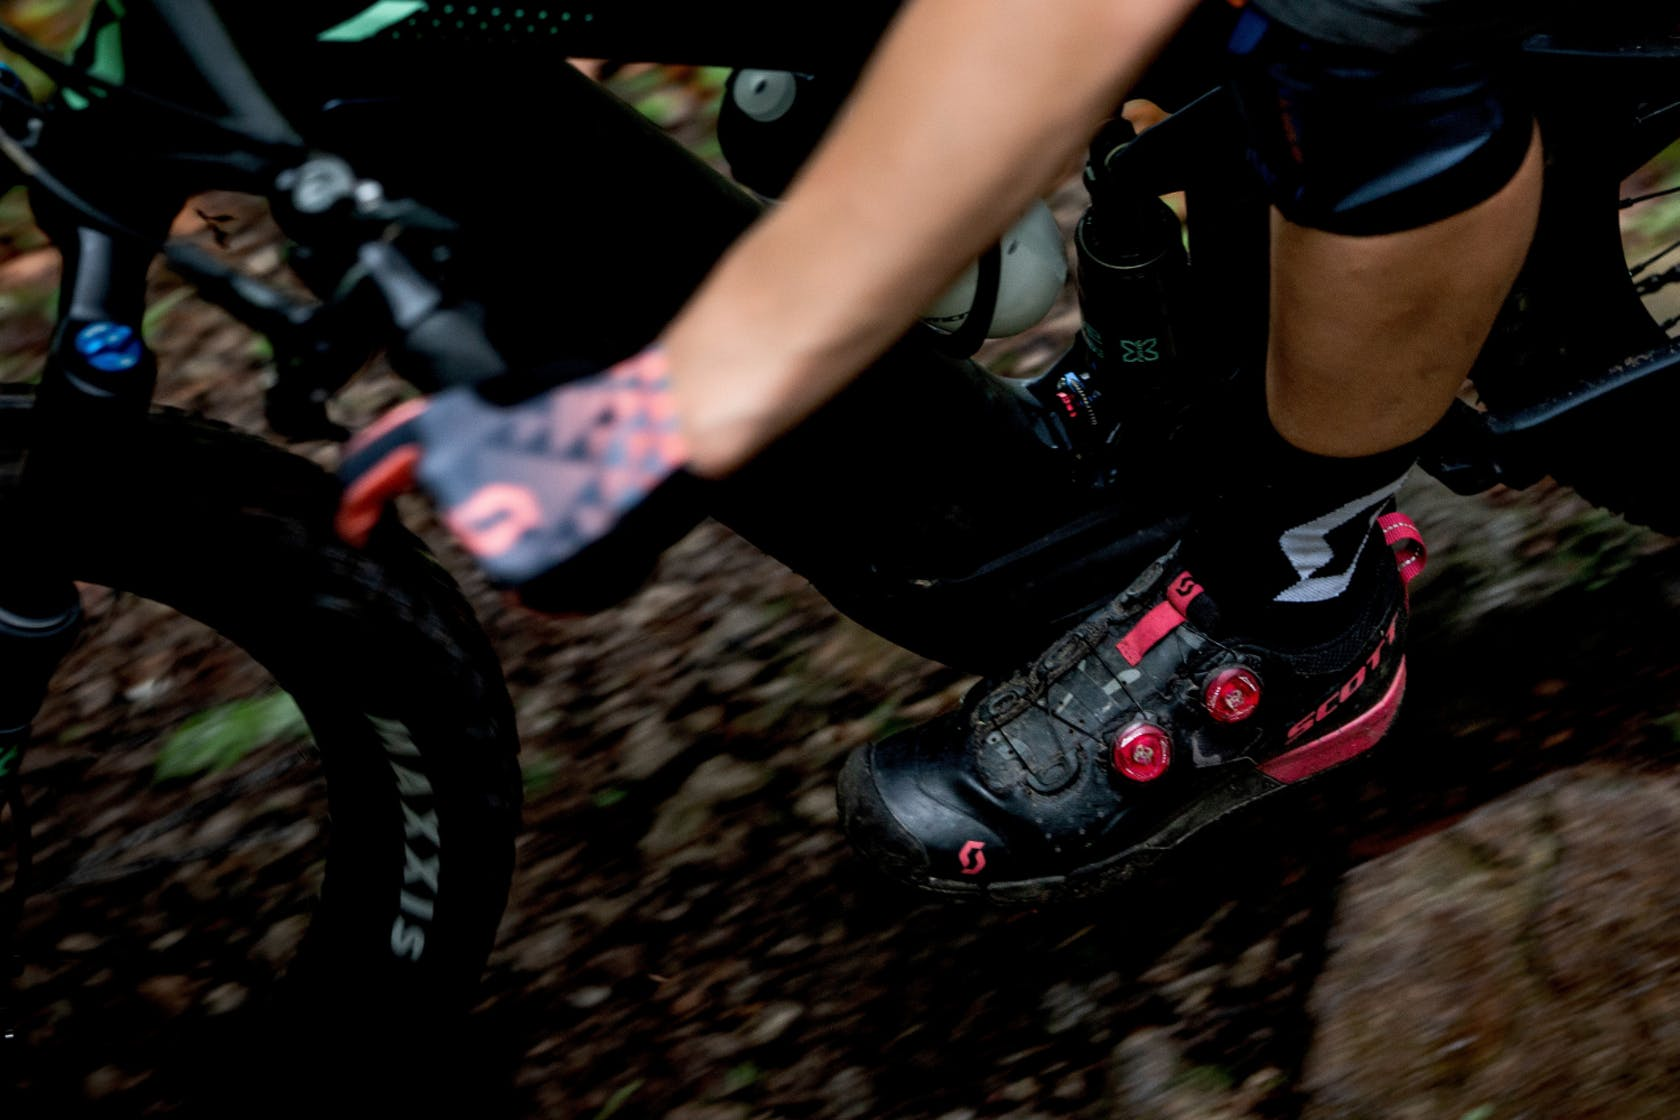 scarpe mountainbike shop online